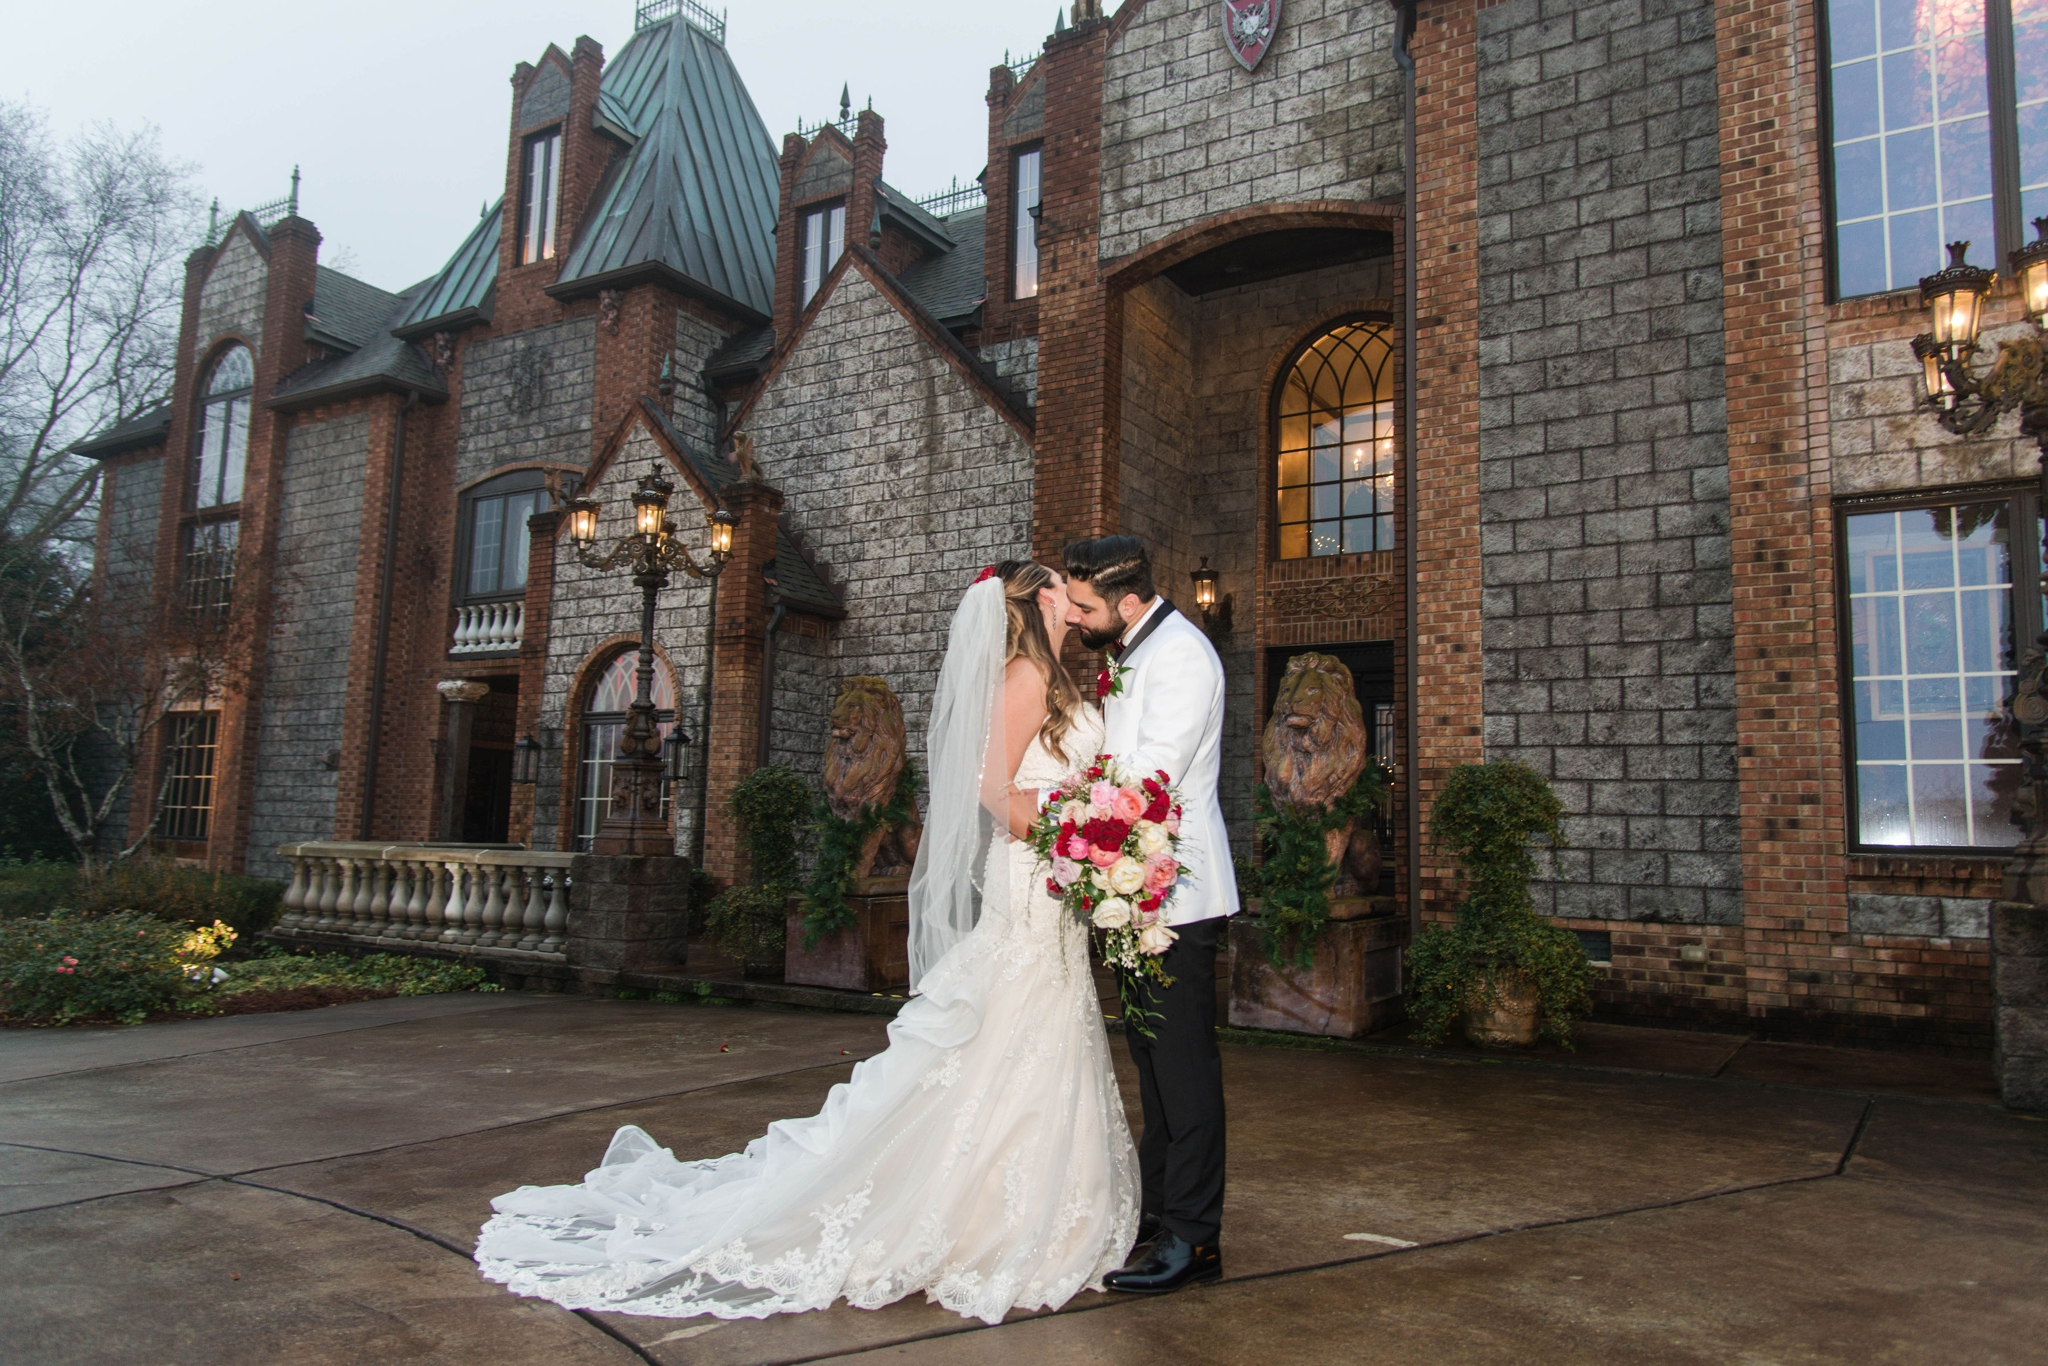 Portraits of the Bride and Groom in front of the Castle - Honolulu Oahu Hawaii Wedding Photographer